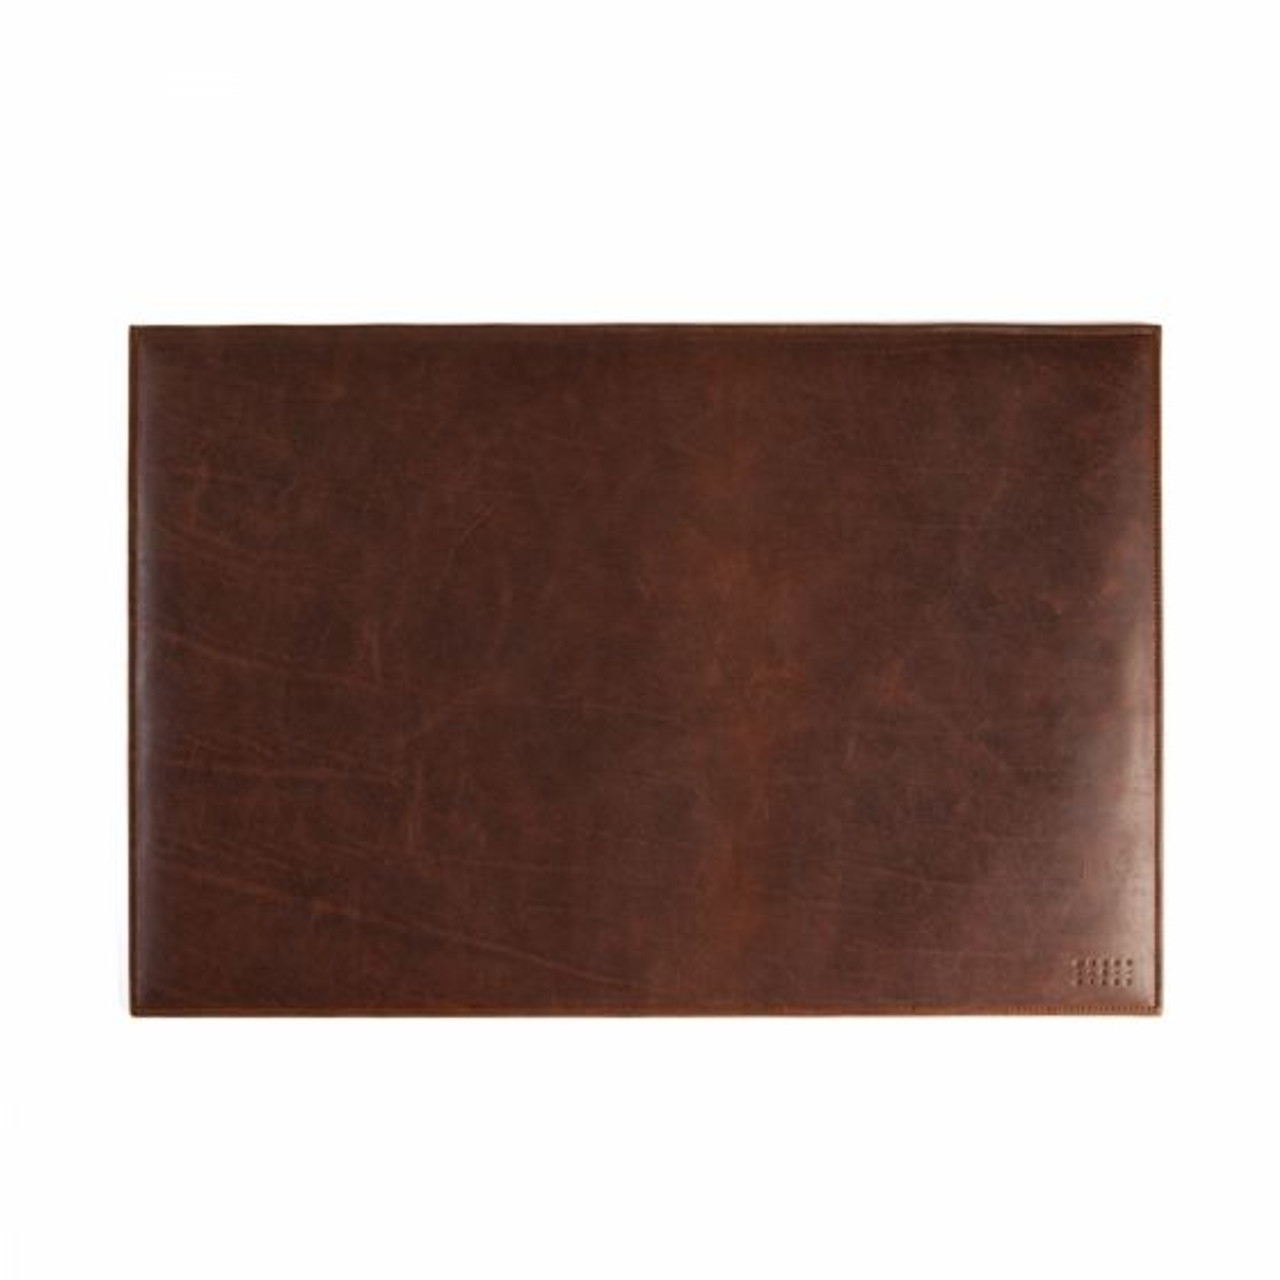 lauren blotter leather buy at product ralph luxdeco black brennanblotter brennan desk online com